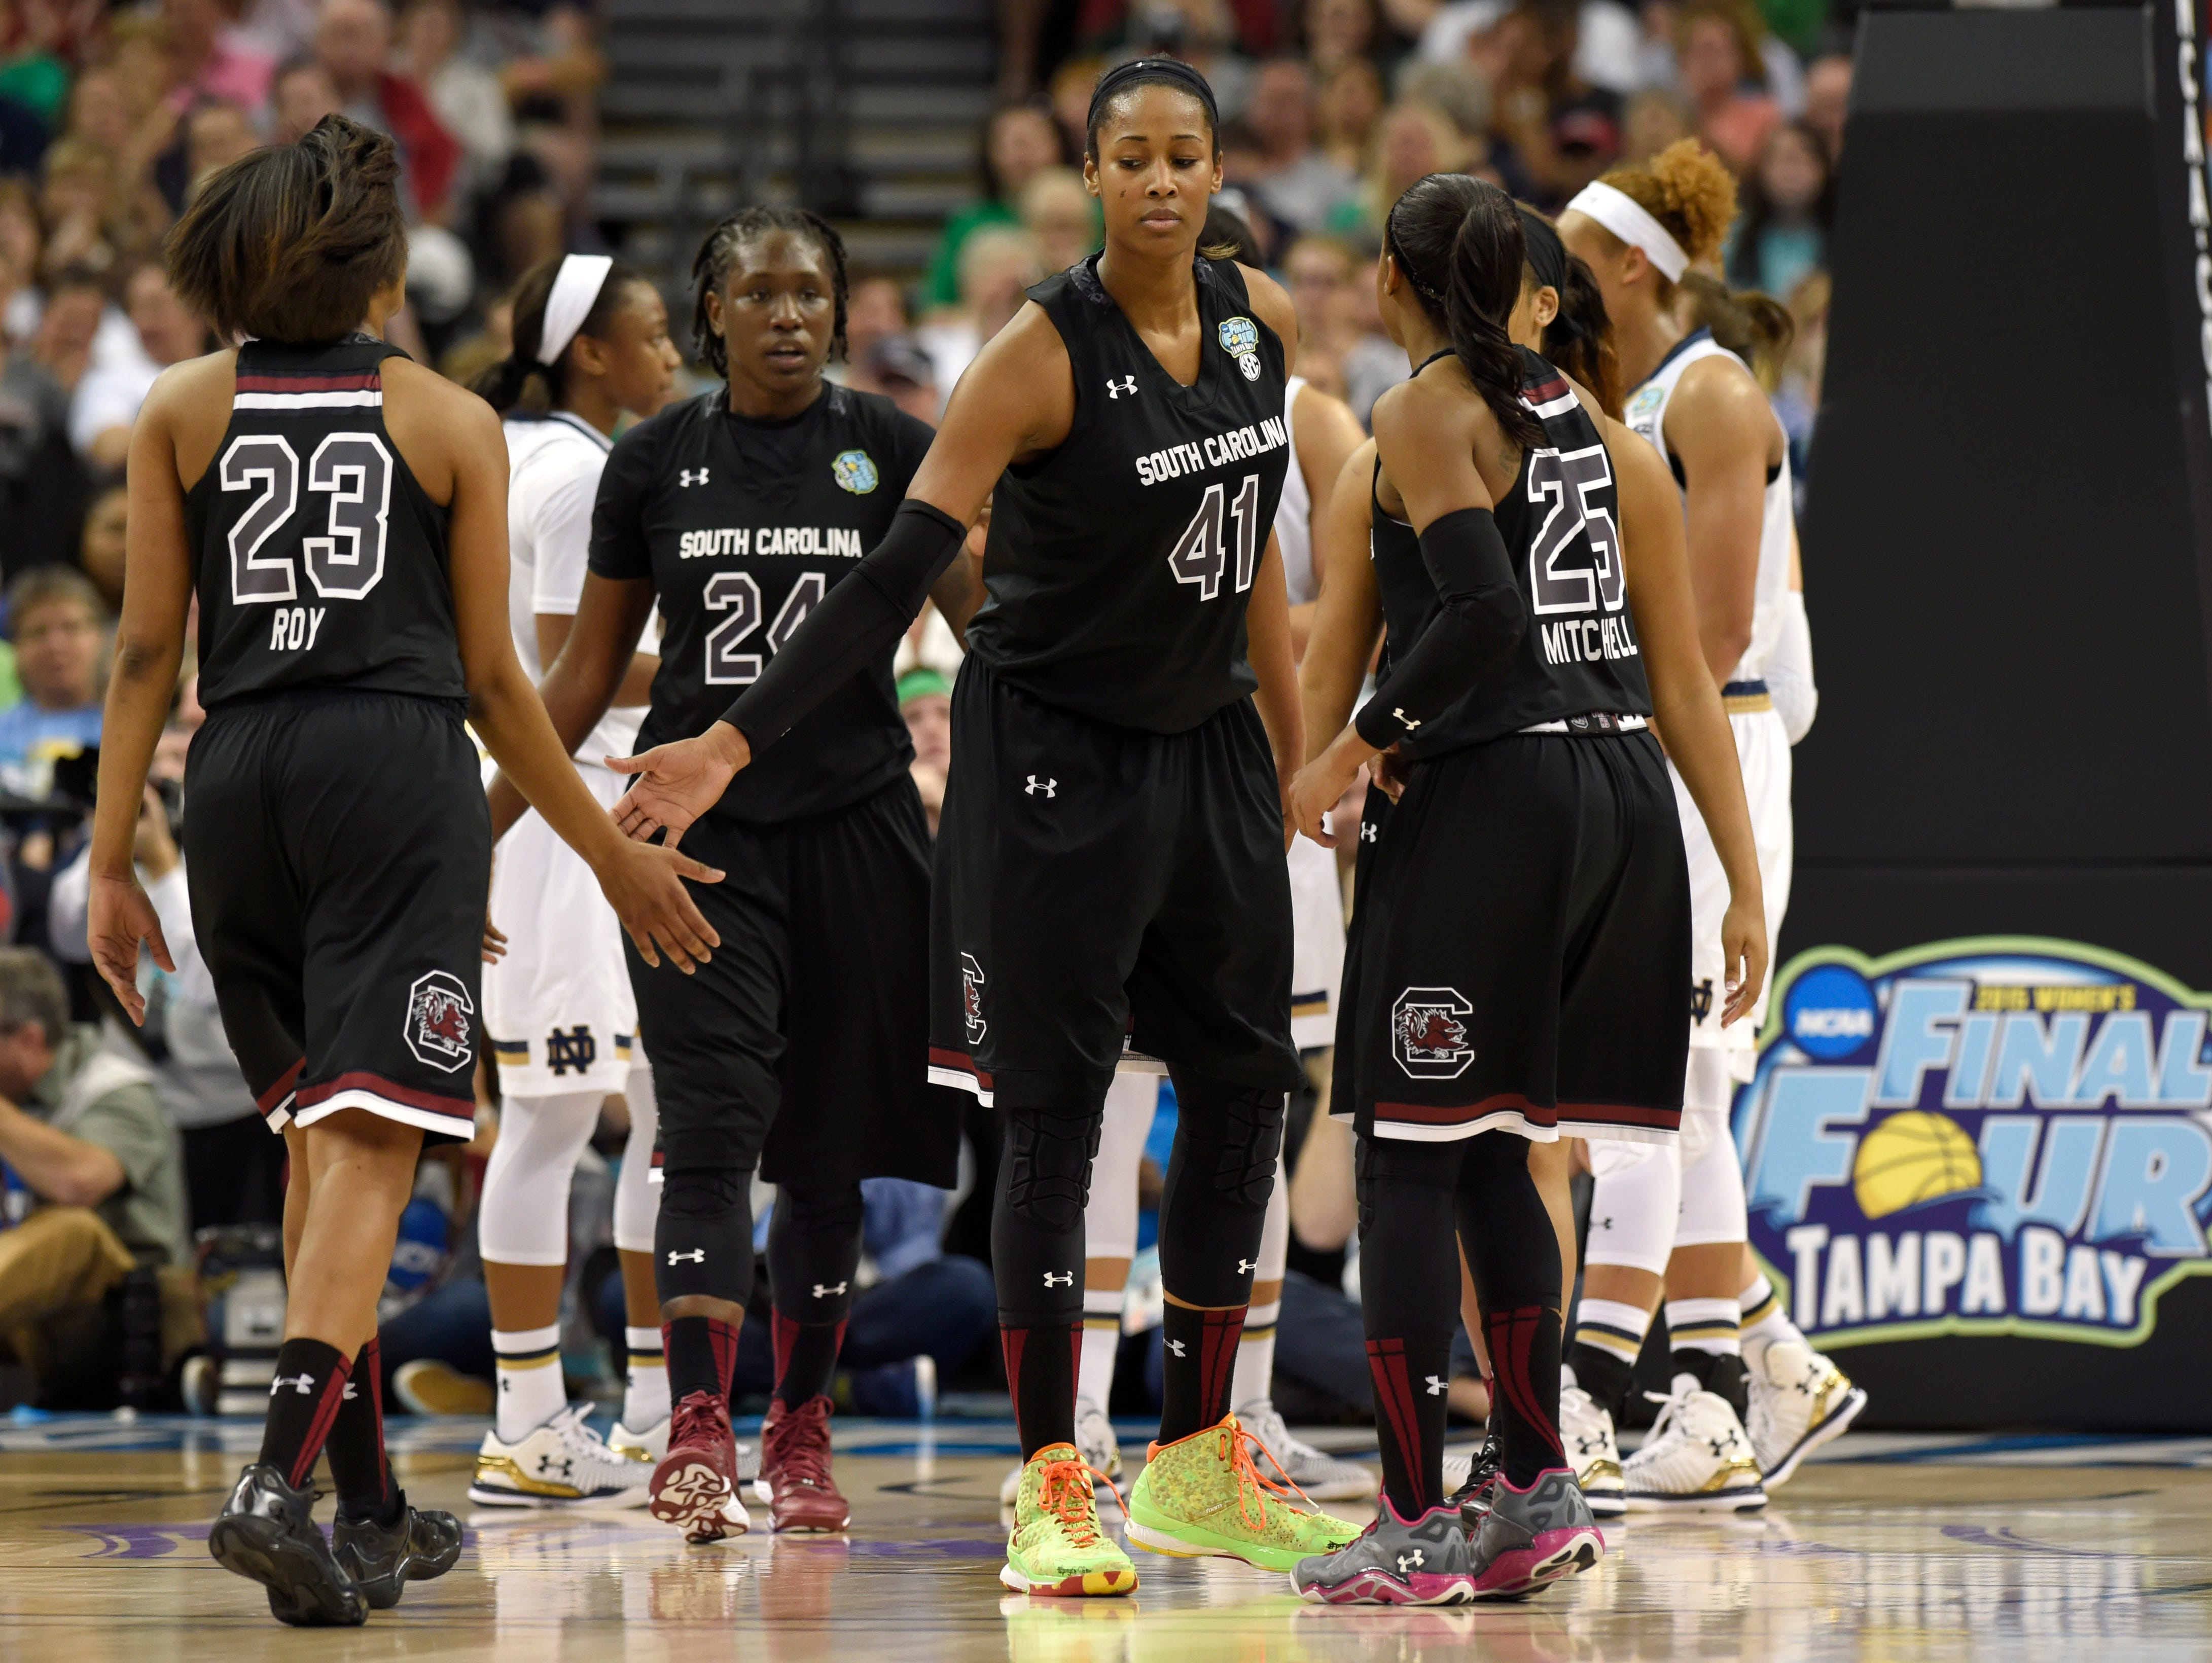 USC's Alaina Coates from Dutch Fork HS is one of three players who will be trying to earn spots on U.S. teams.